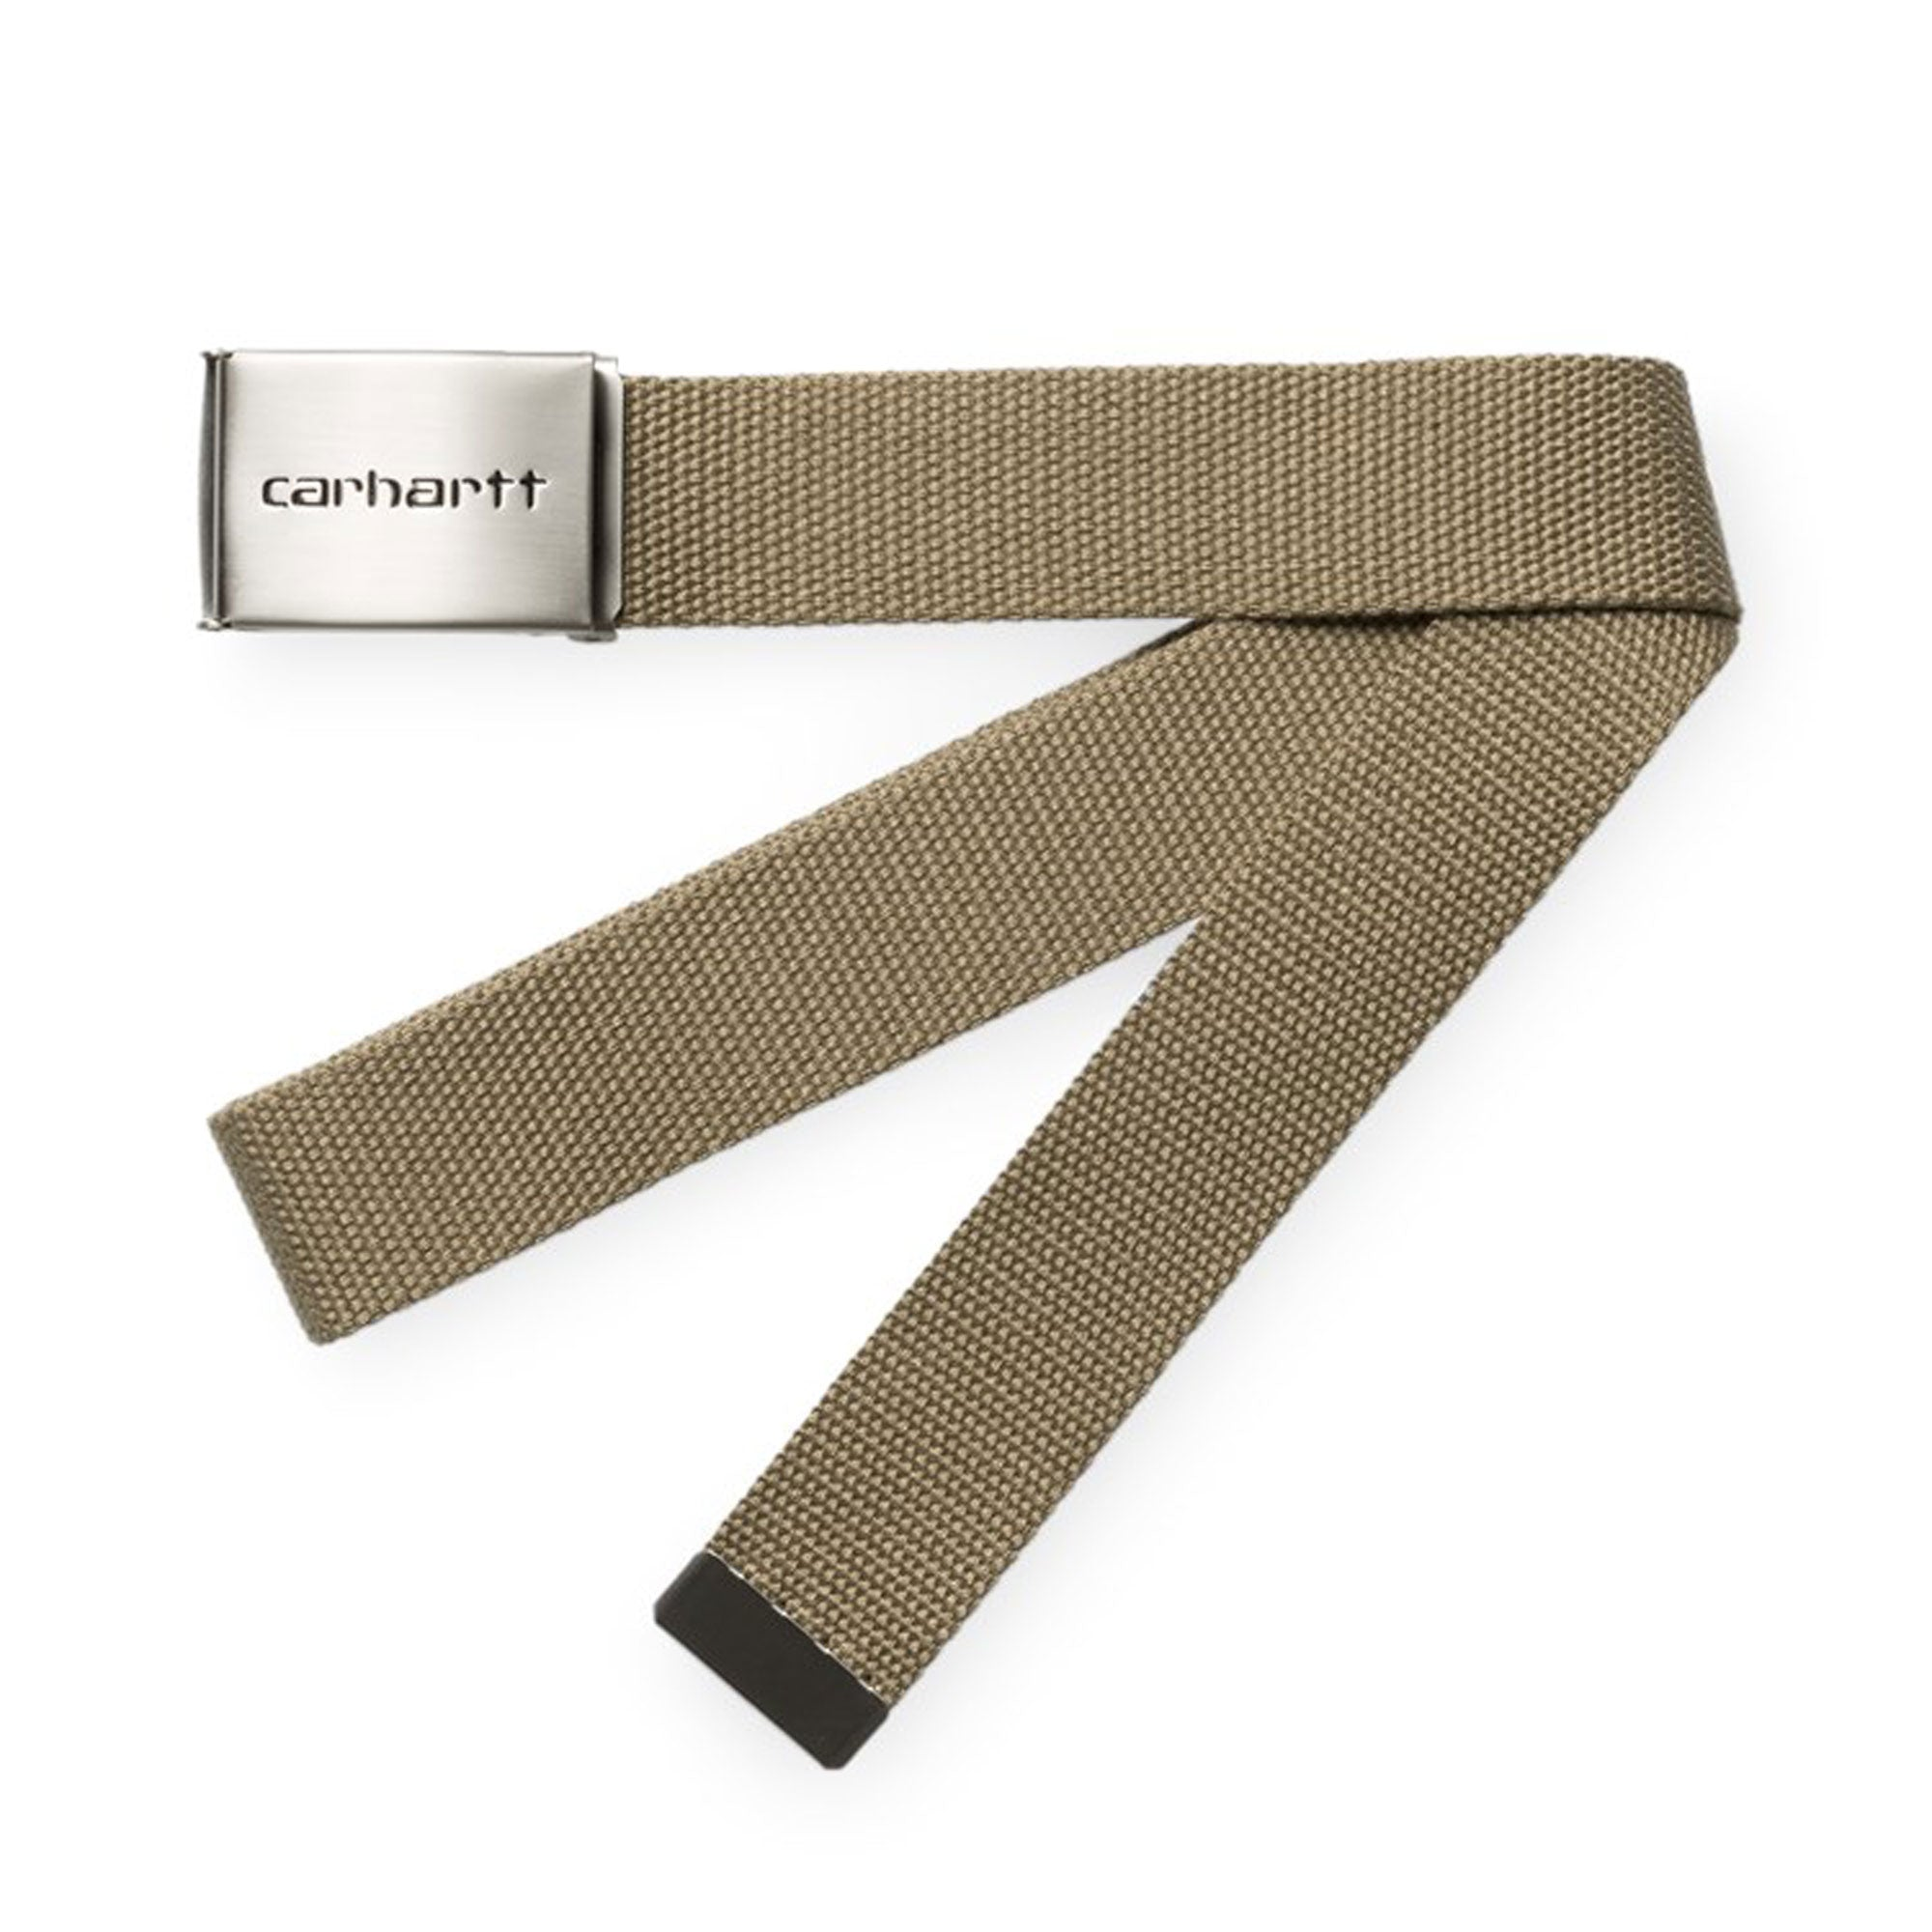 Carhartt Clip Belt Chrome Product Photo #1